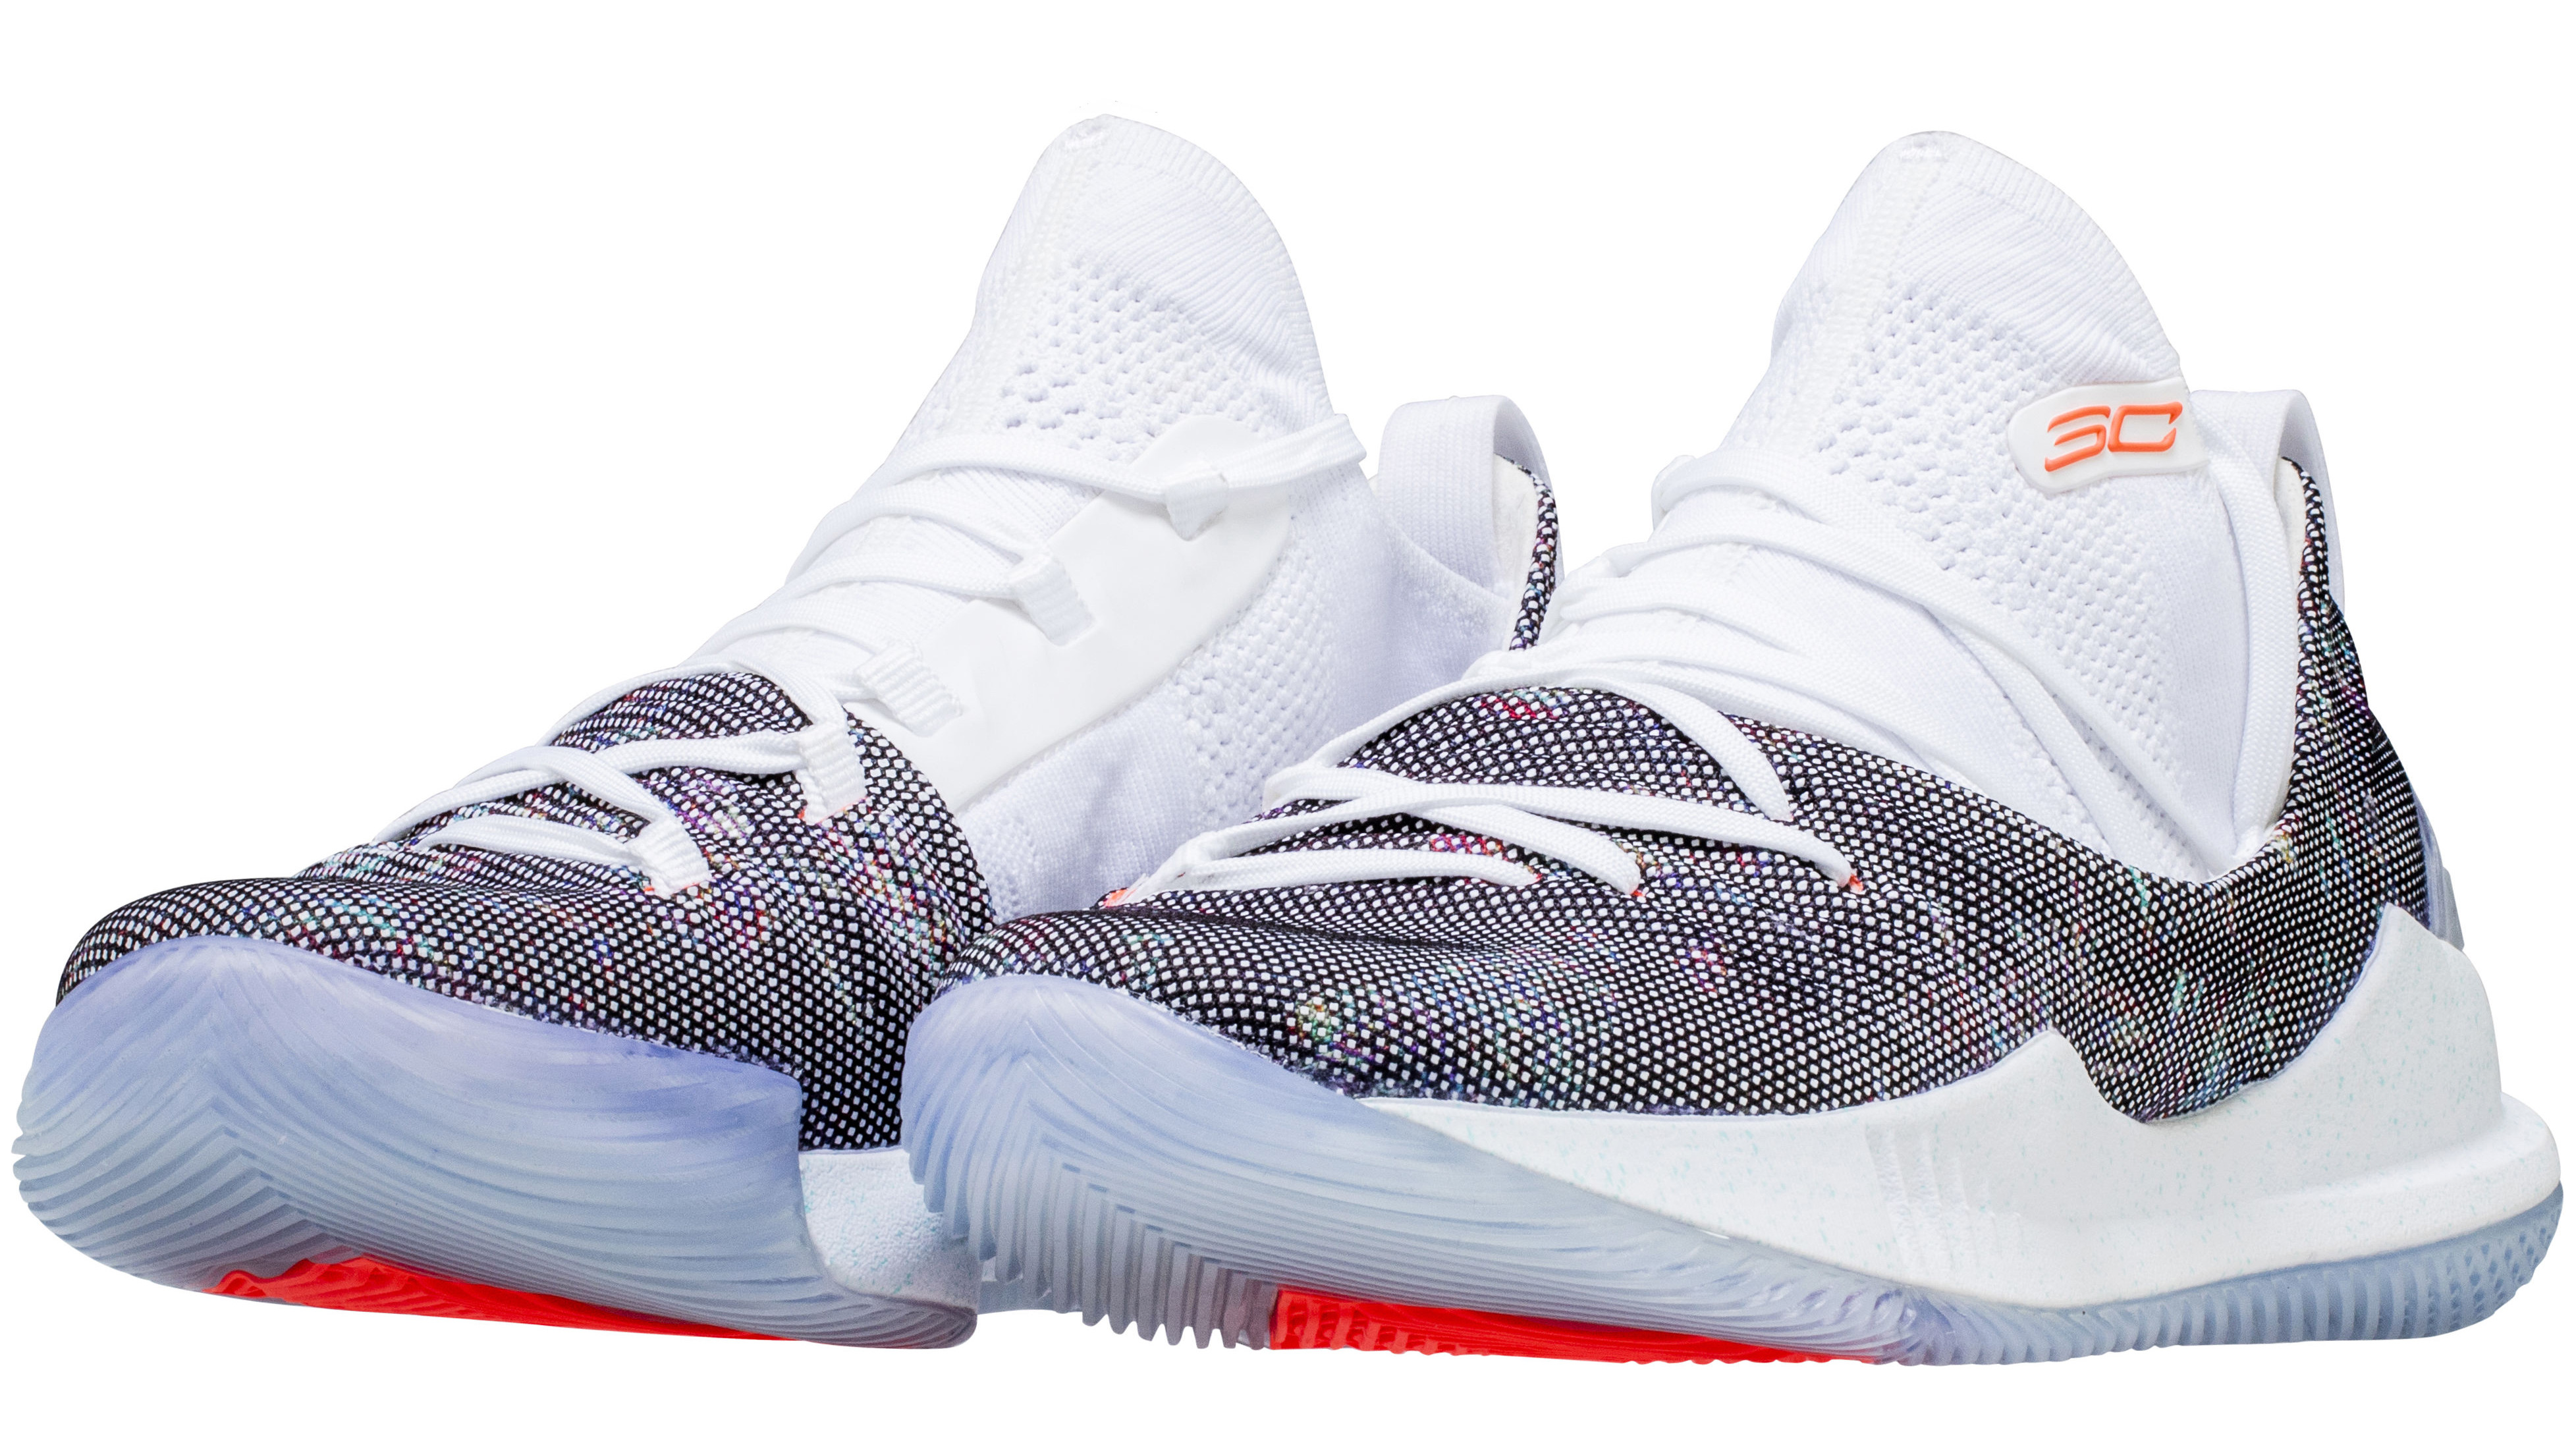 346b110042da Under Armour Curry 5  Welcome Home  3020657-107 Release Date